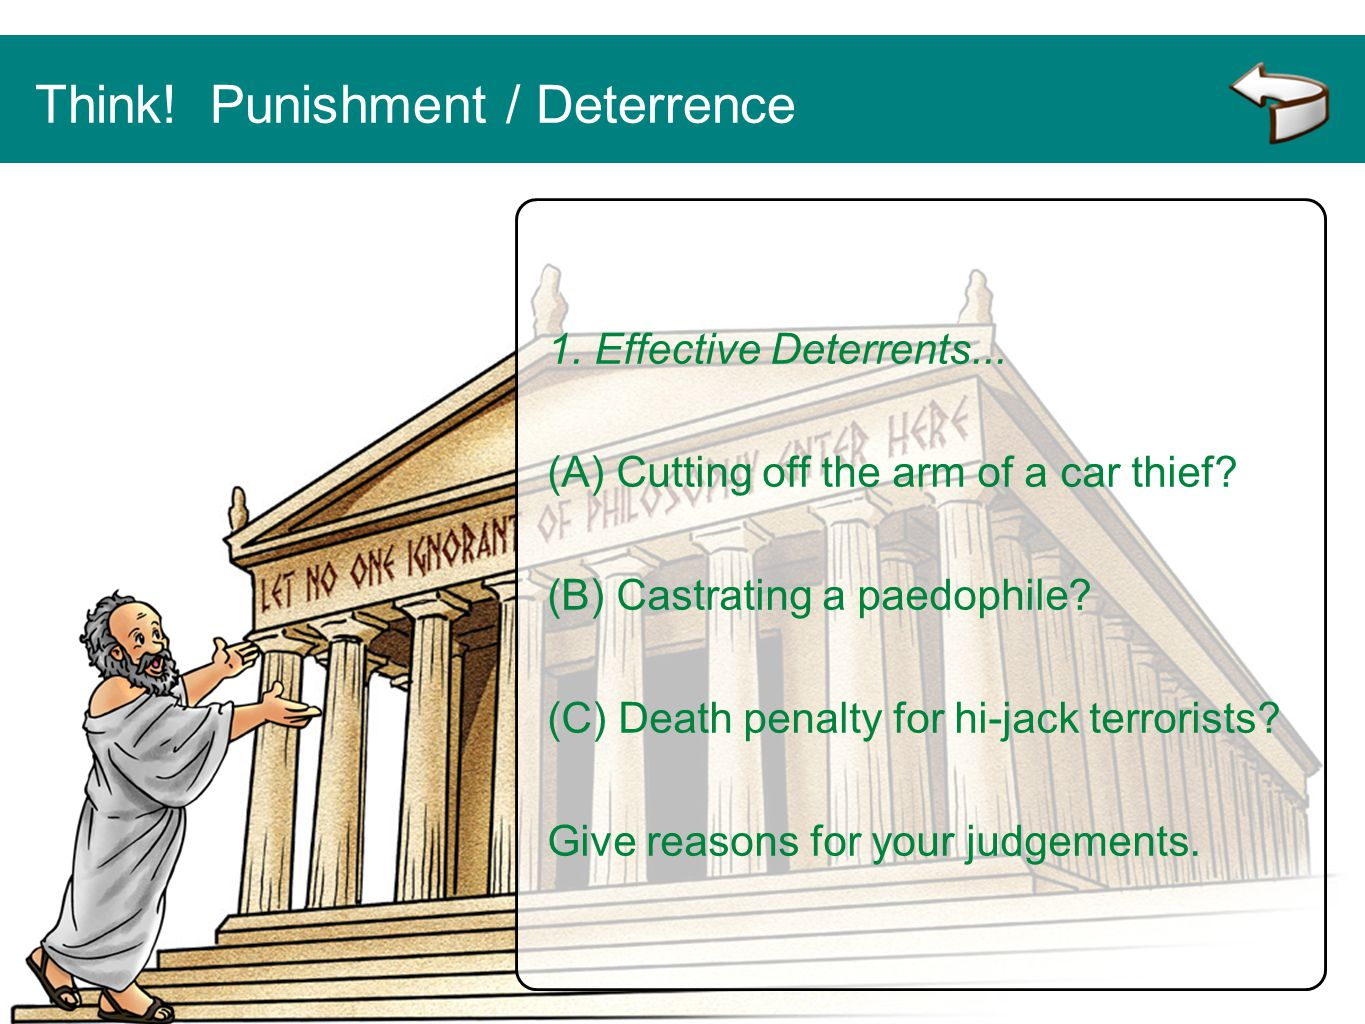 Think! Punishment / Deterrence 1. Effective Deterrents... (A) Cutting off the arm of a car thief? (B) Castrating a paedophile? (C) Death penalty for h